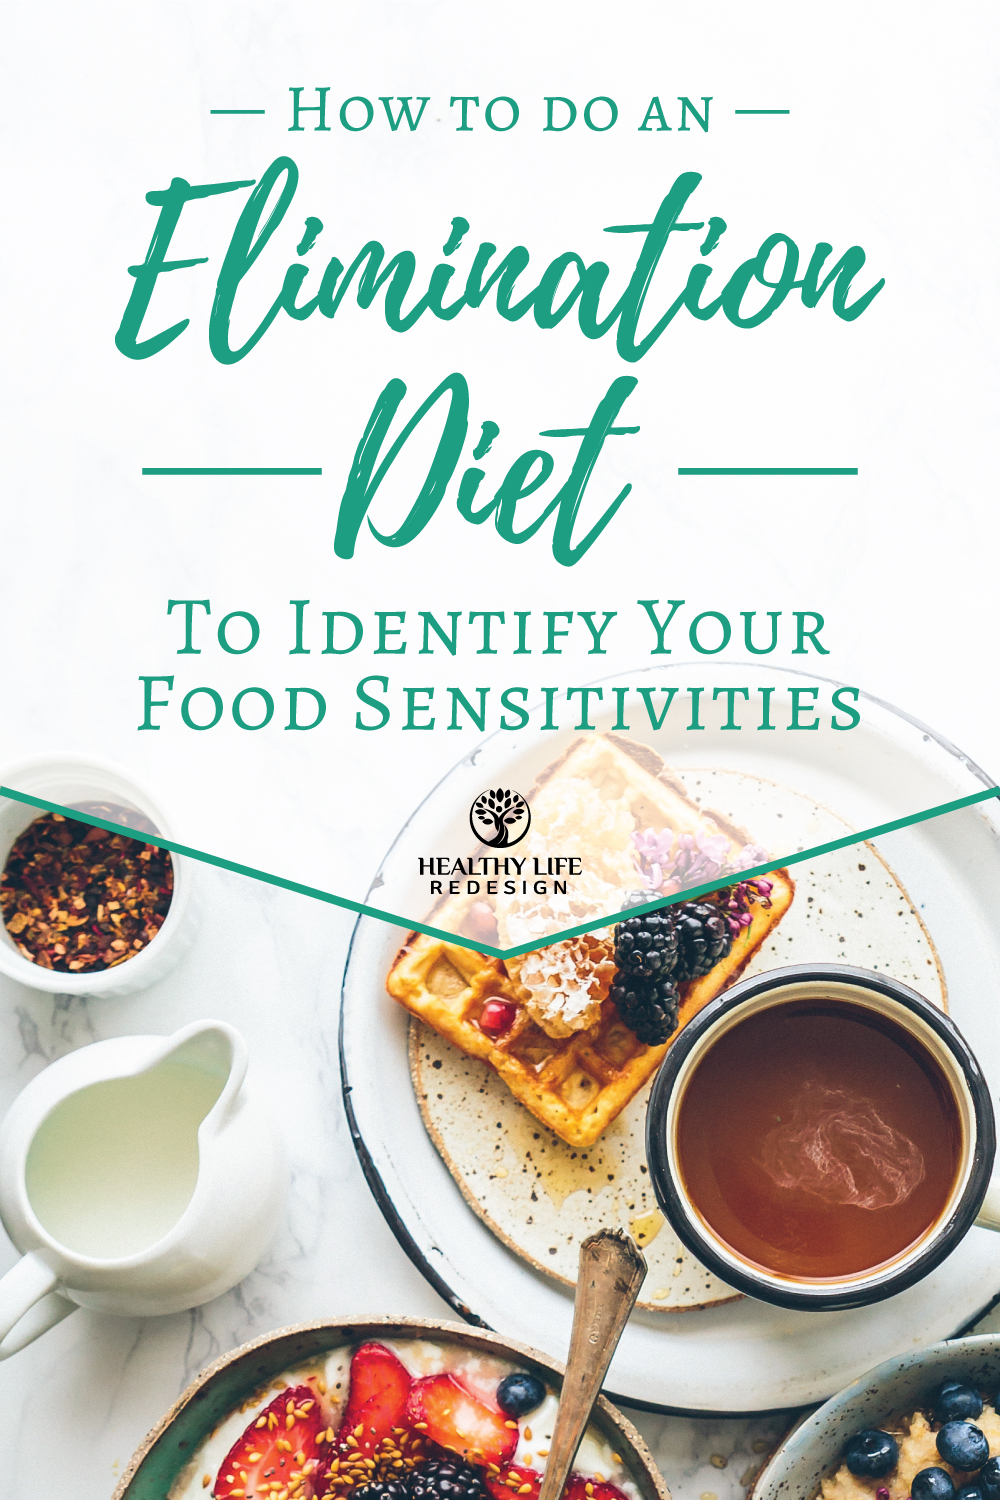 How to do an Elimination Diet to Identify your Food Sensitivities